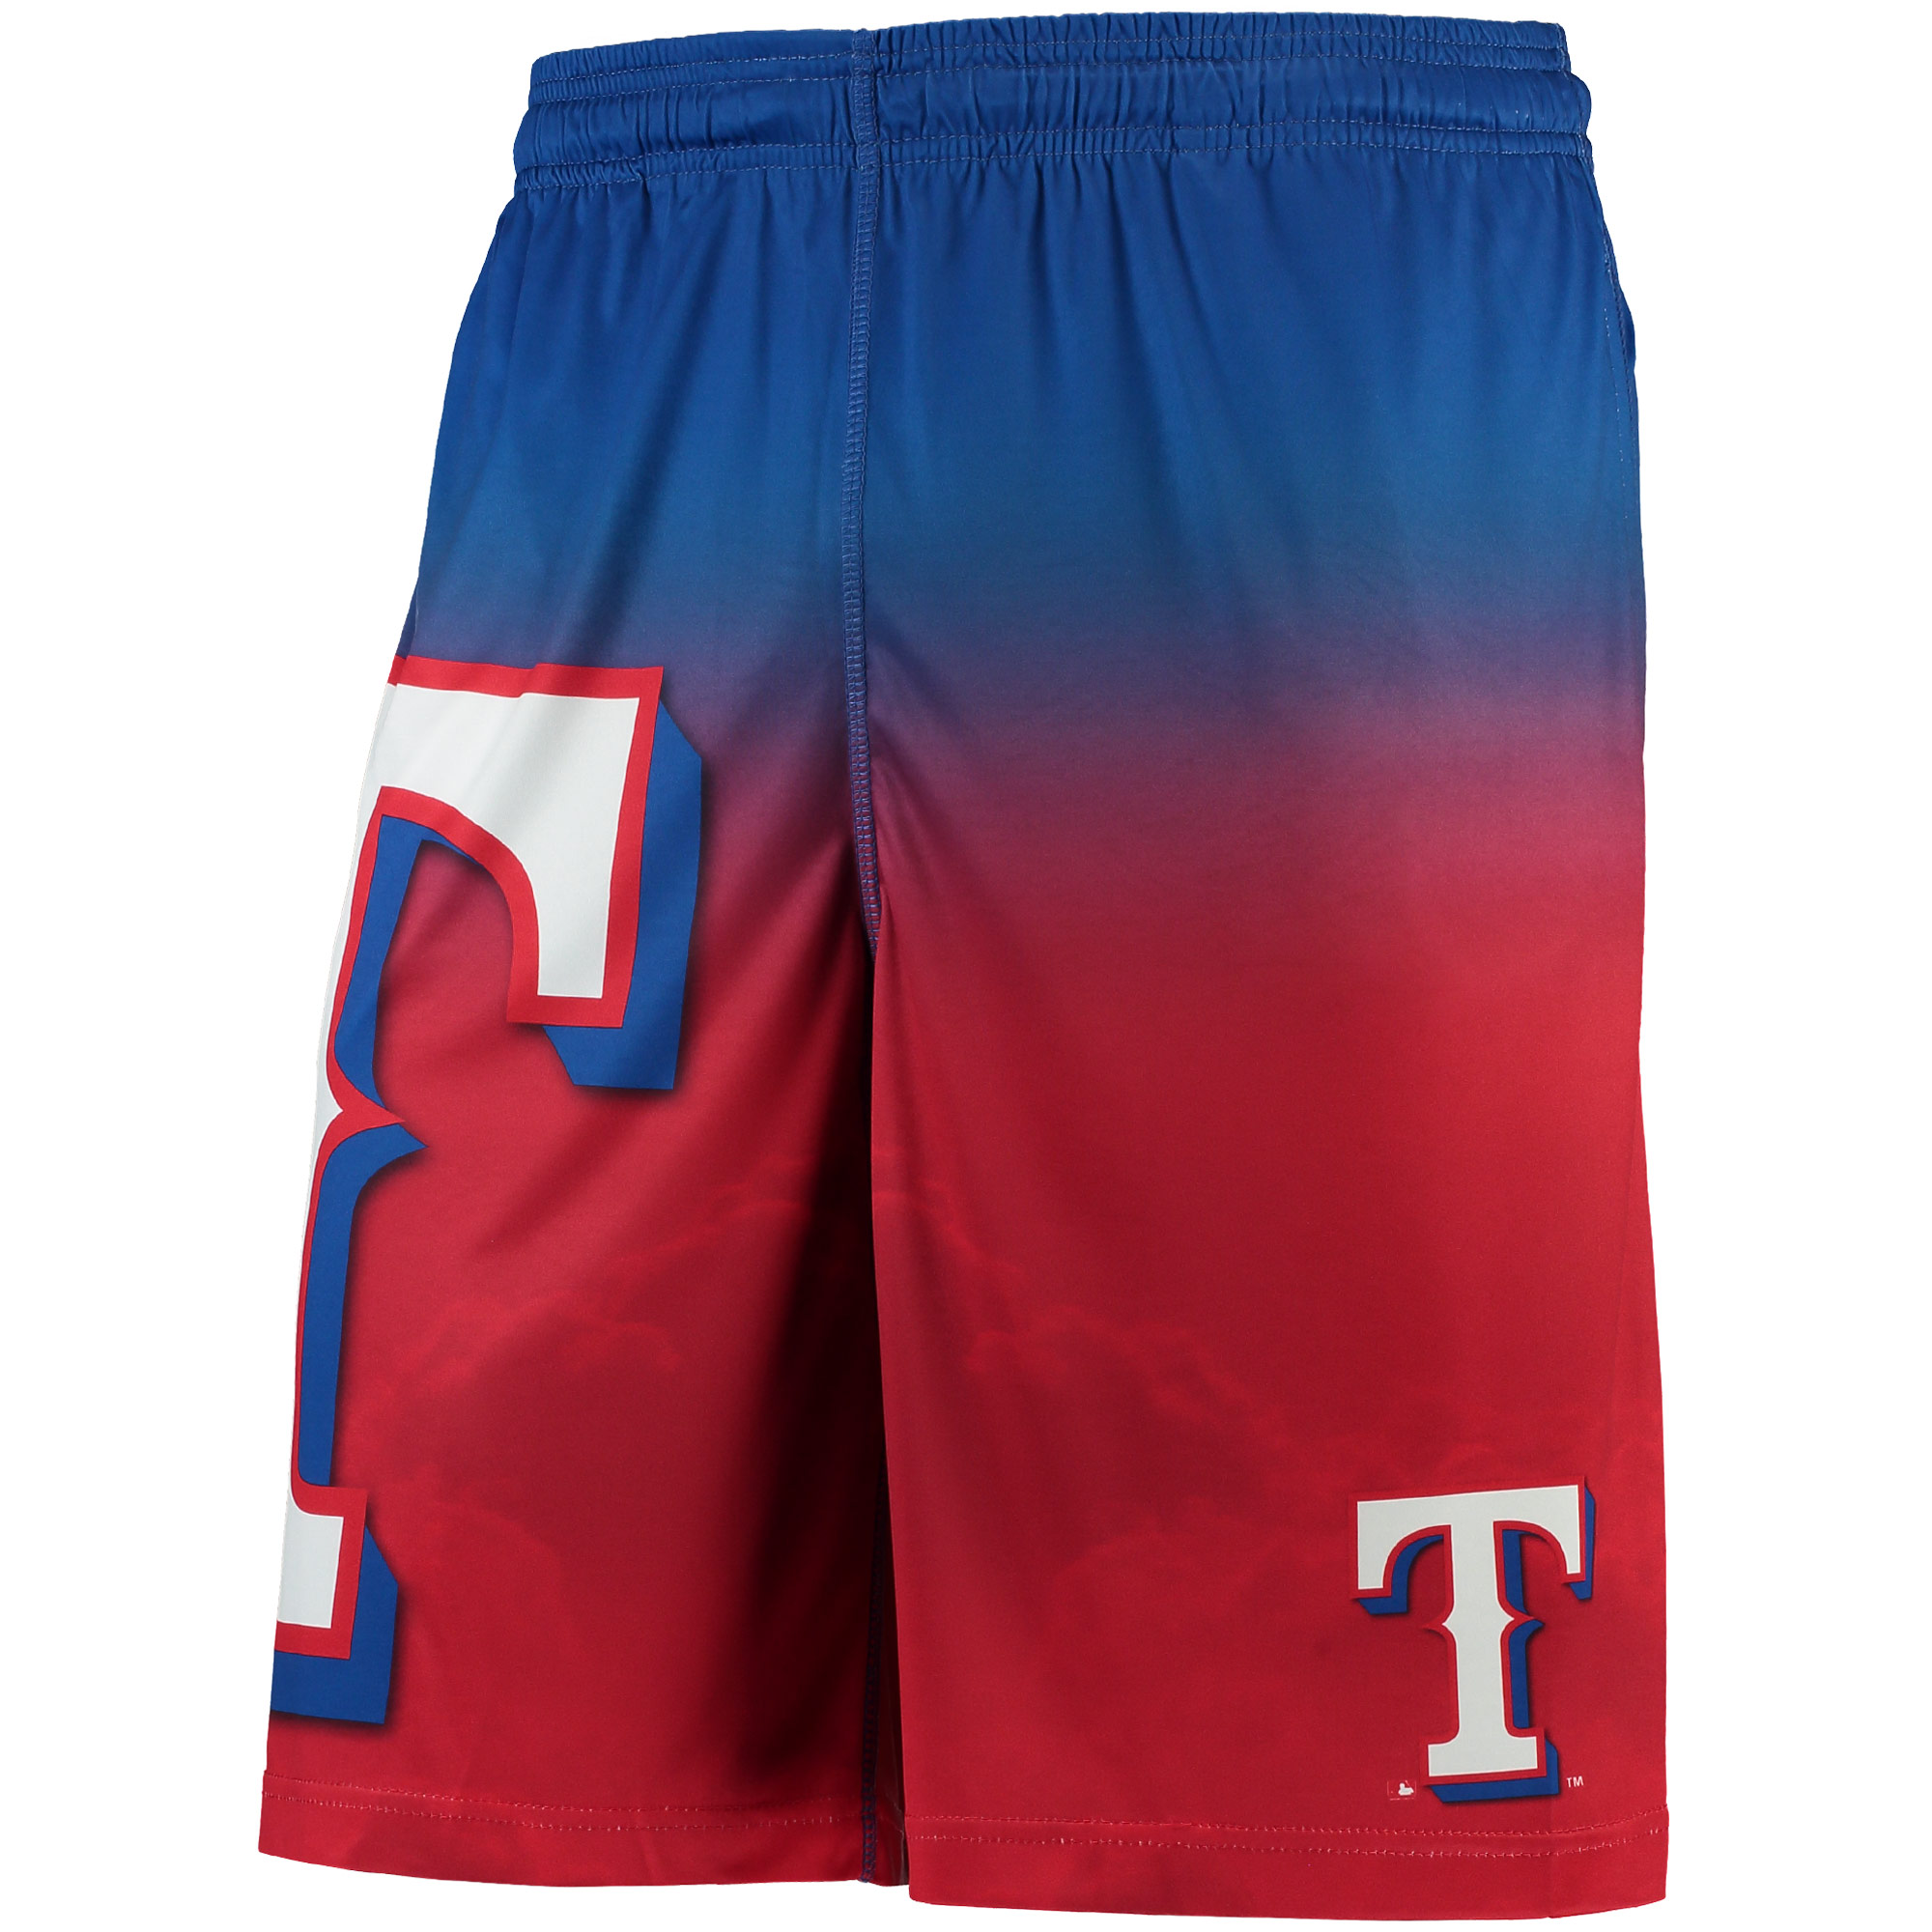 Texas Rangers Gradient Big Logo Training Shorts - Red/Royal